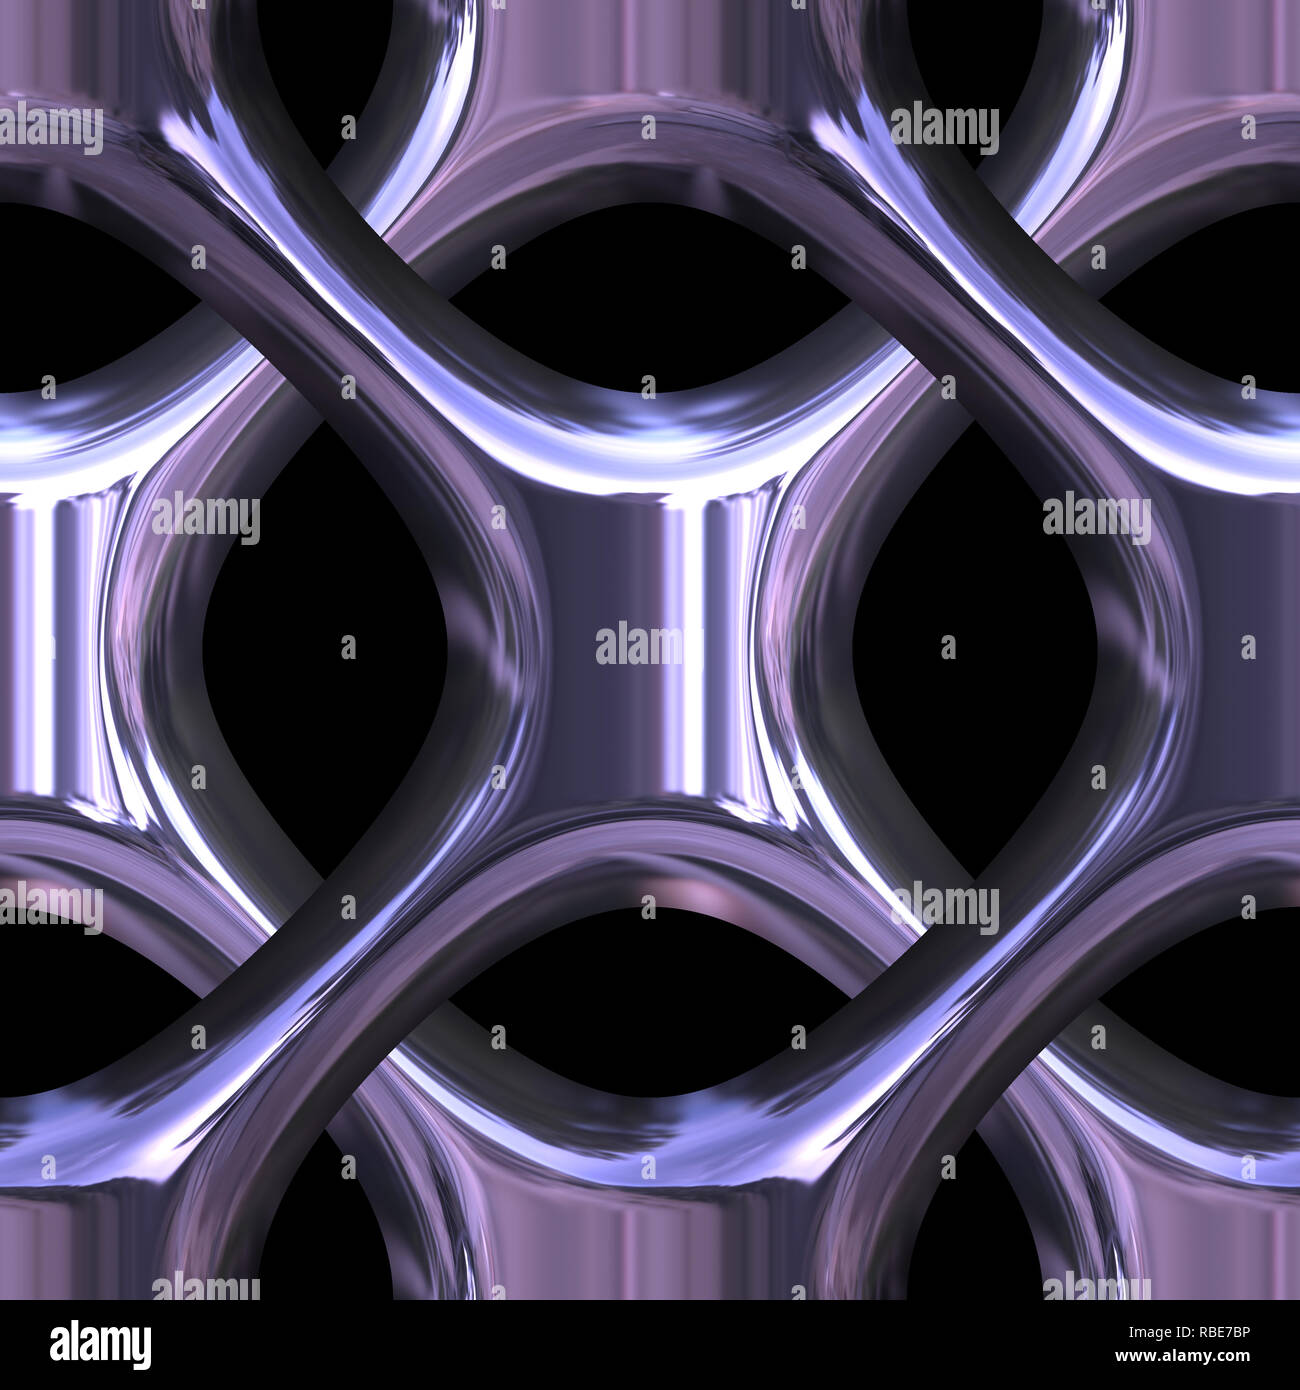 3d Effect Seamless Background Wallpaper Metal Tiled Pattern